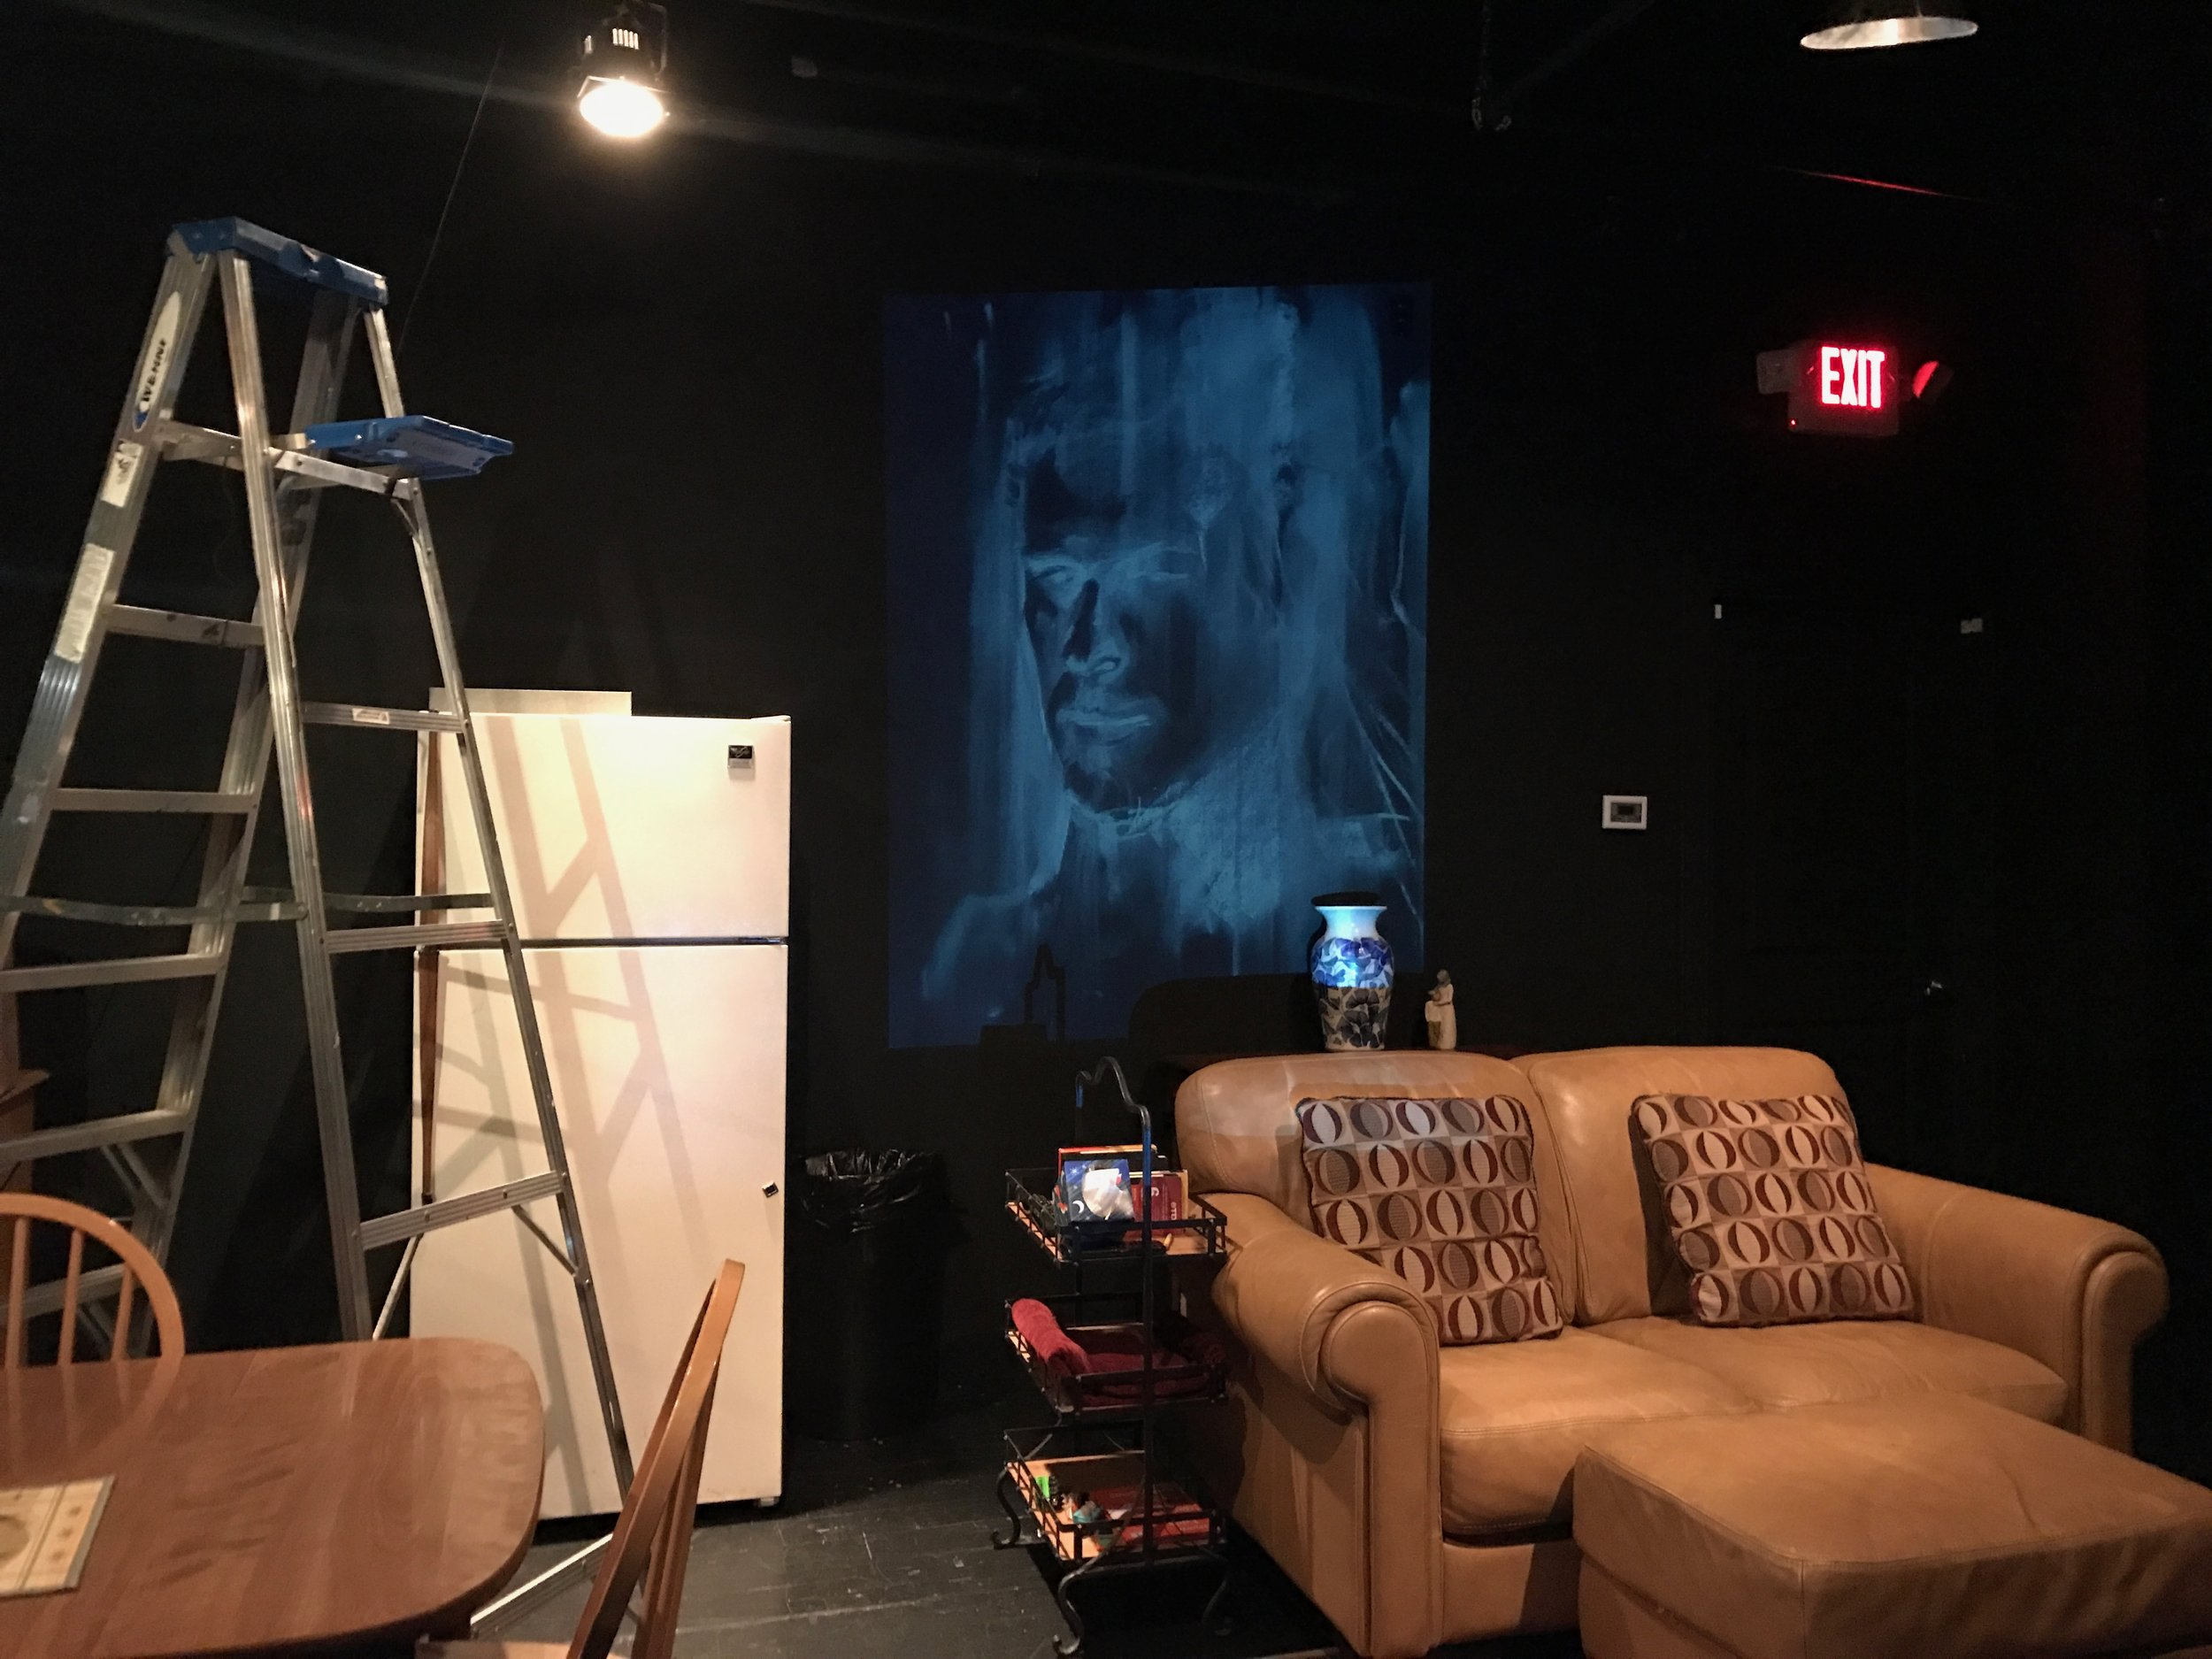 """As a proof of concept, we slipped into the Black Box during the run of """"Rabbit Hole"""" and projected a sample sketch against the back wall.It worked – thank god!"""